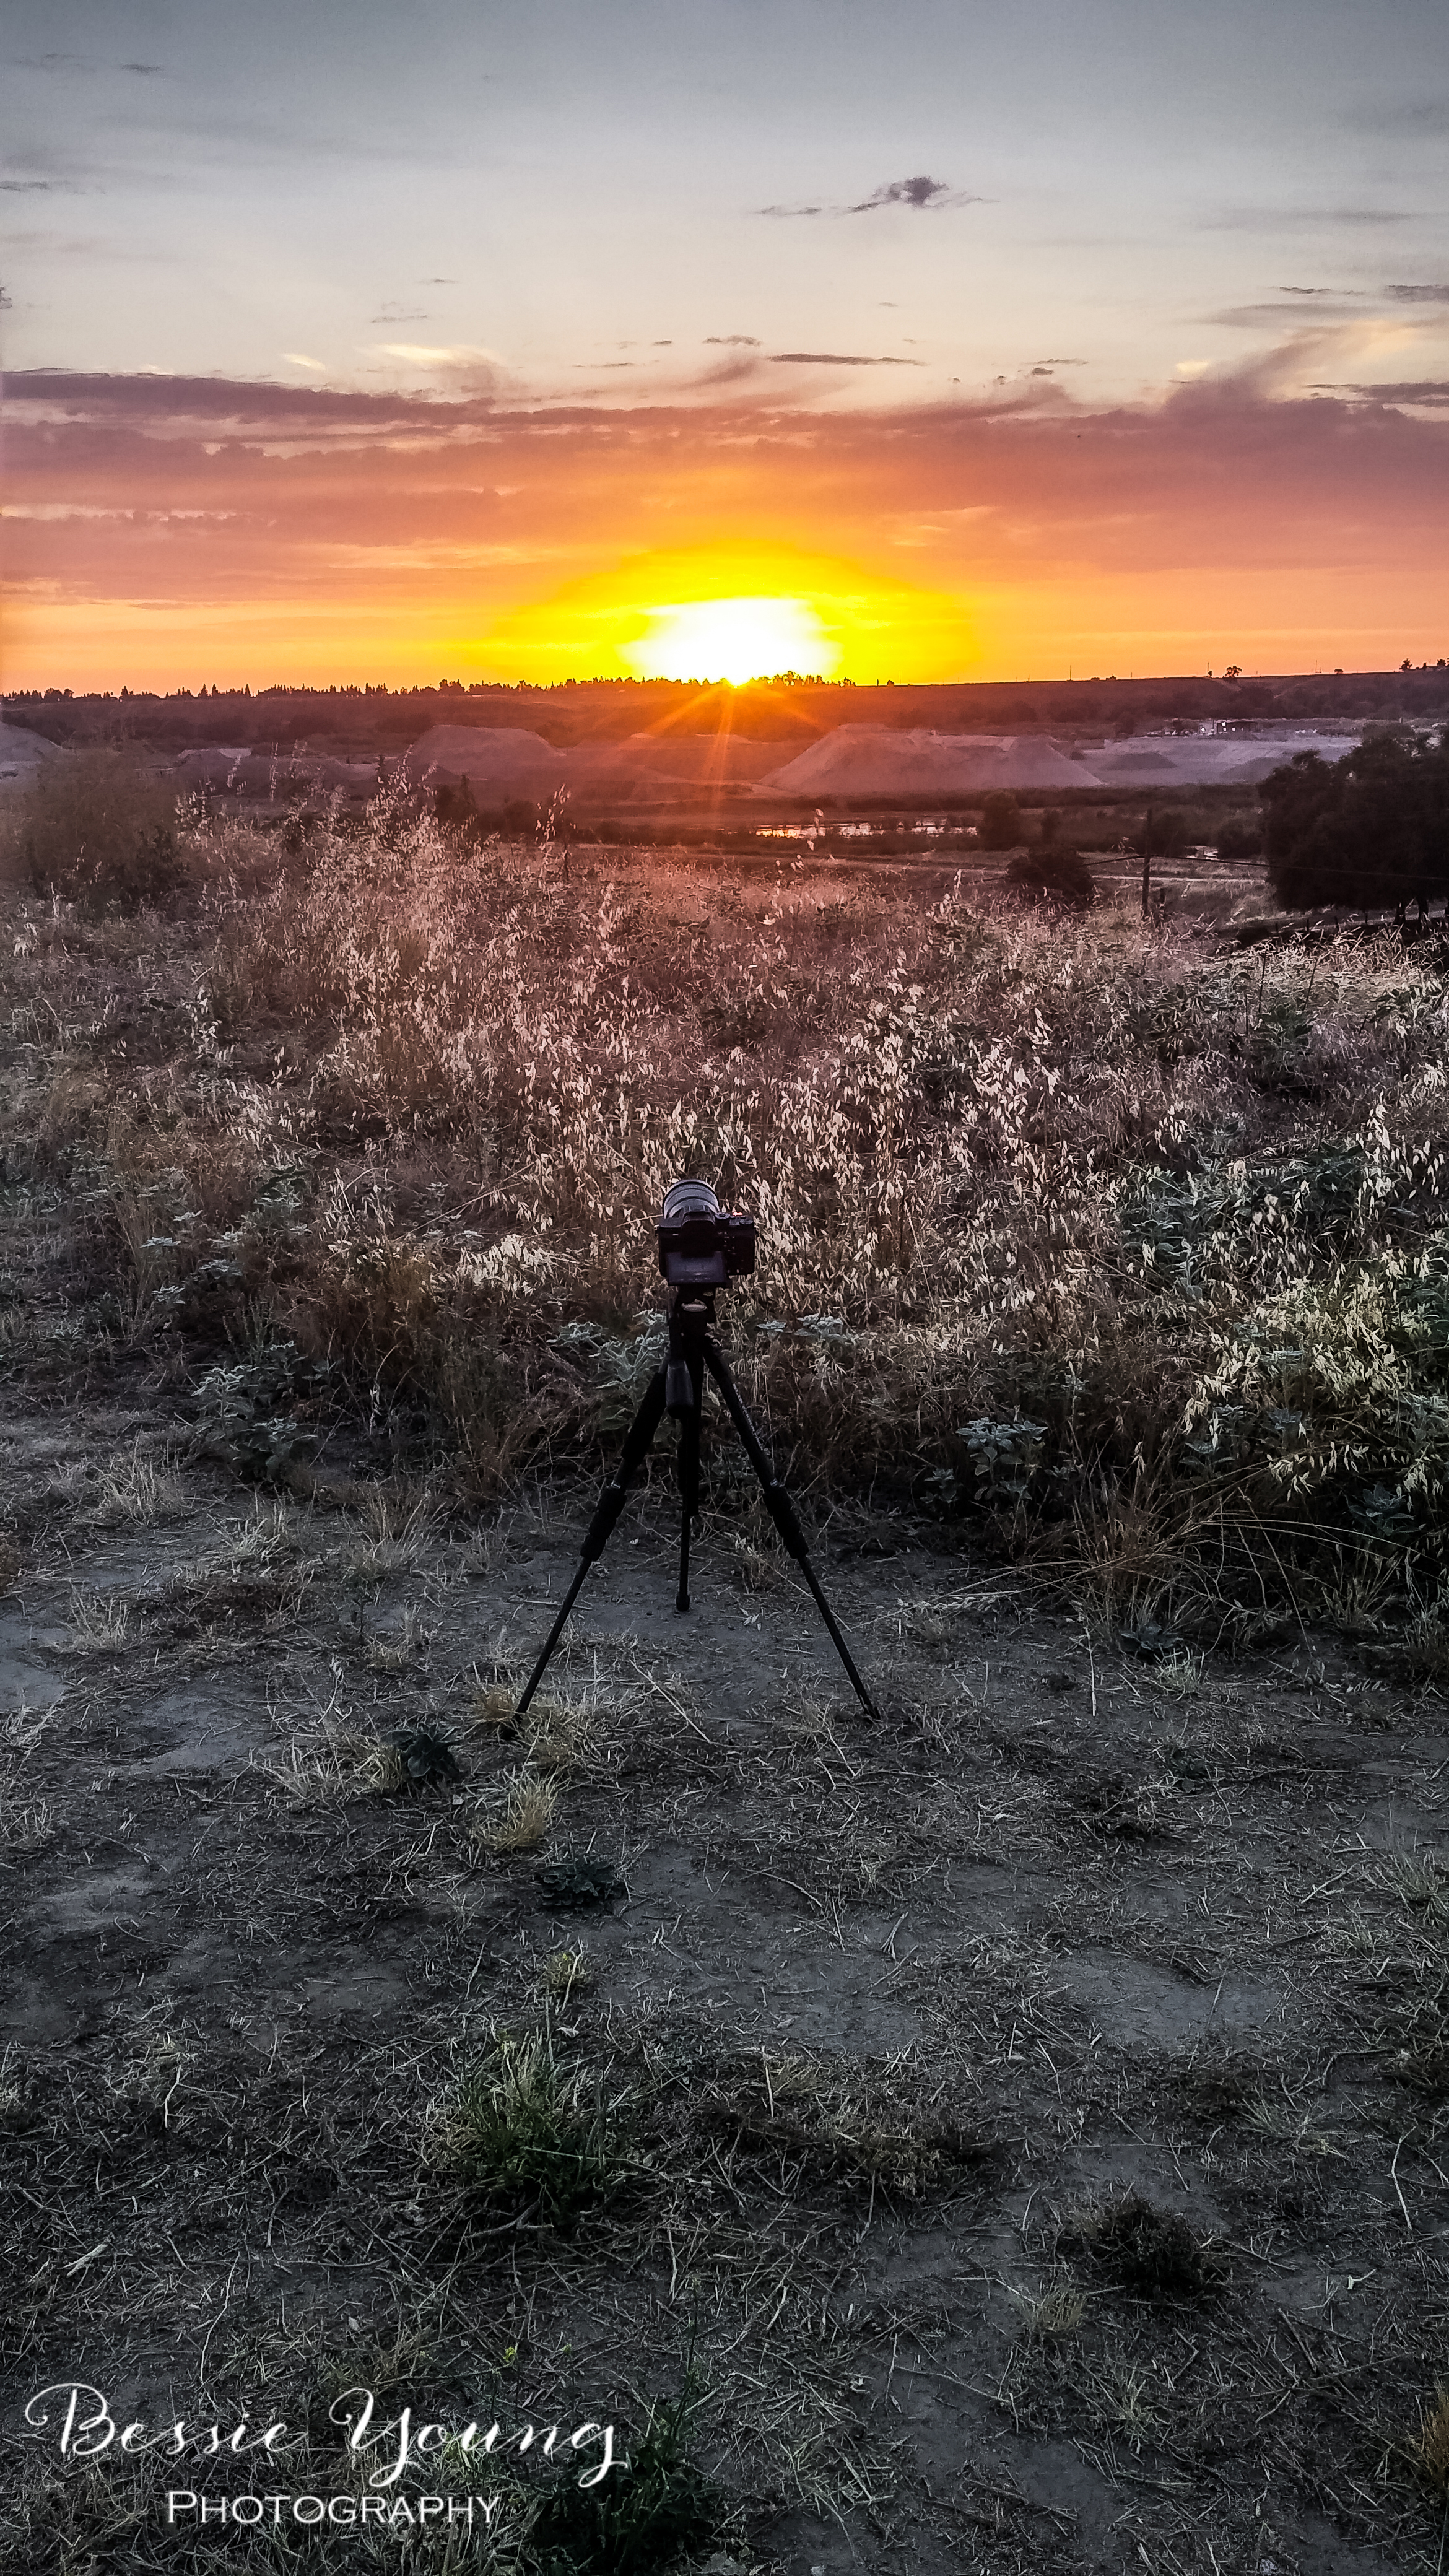 Sunset Time Lapse Sony A7Rii - Woodward Park, Fresno- Bessie Young Photography.jpg